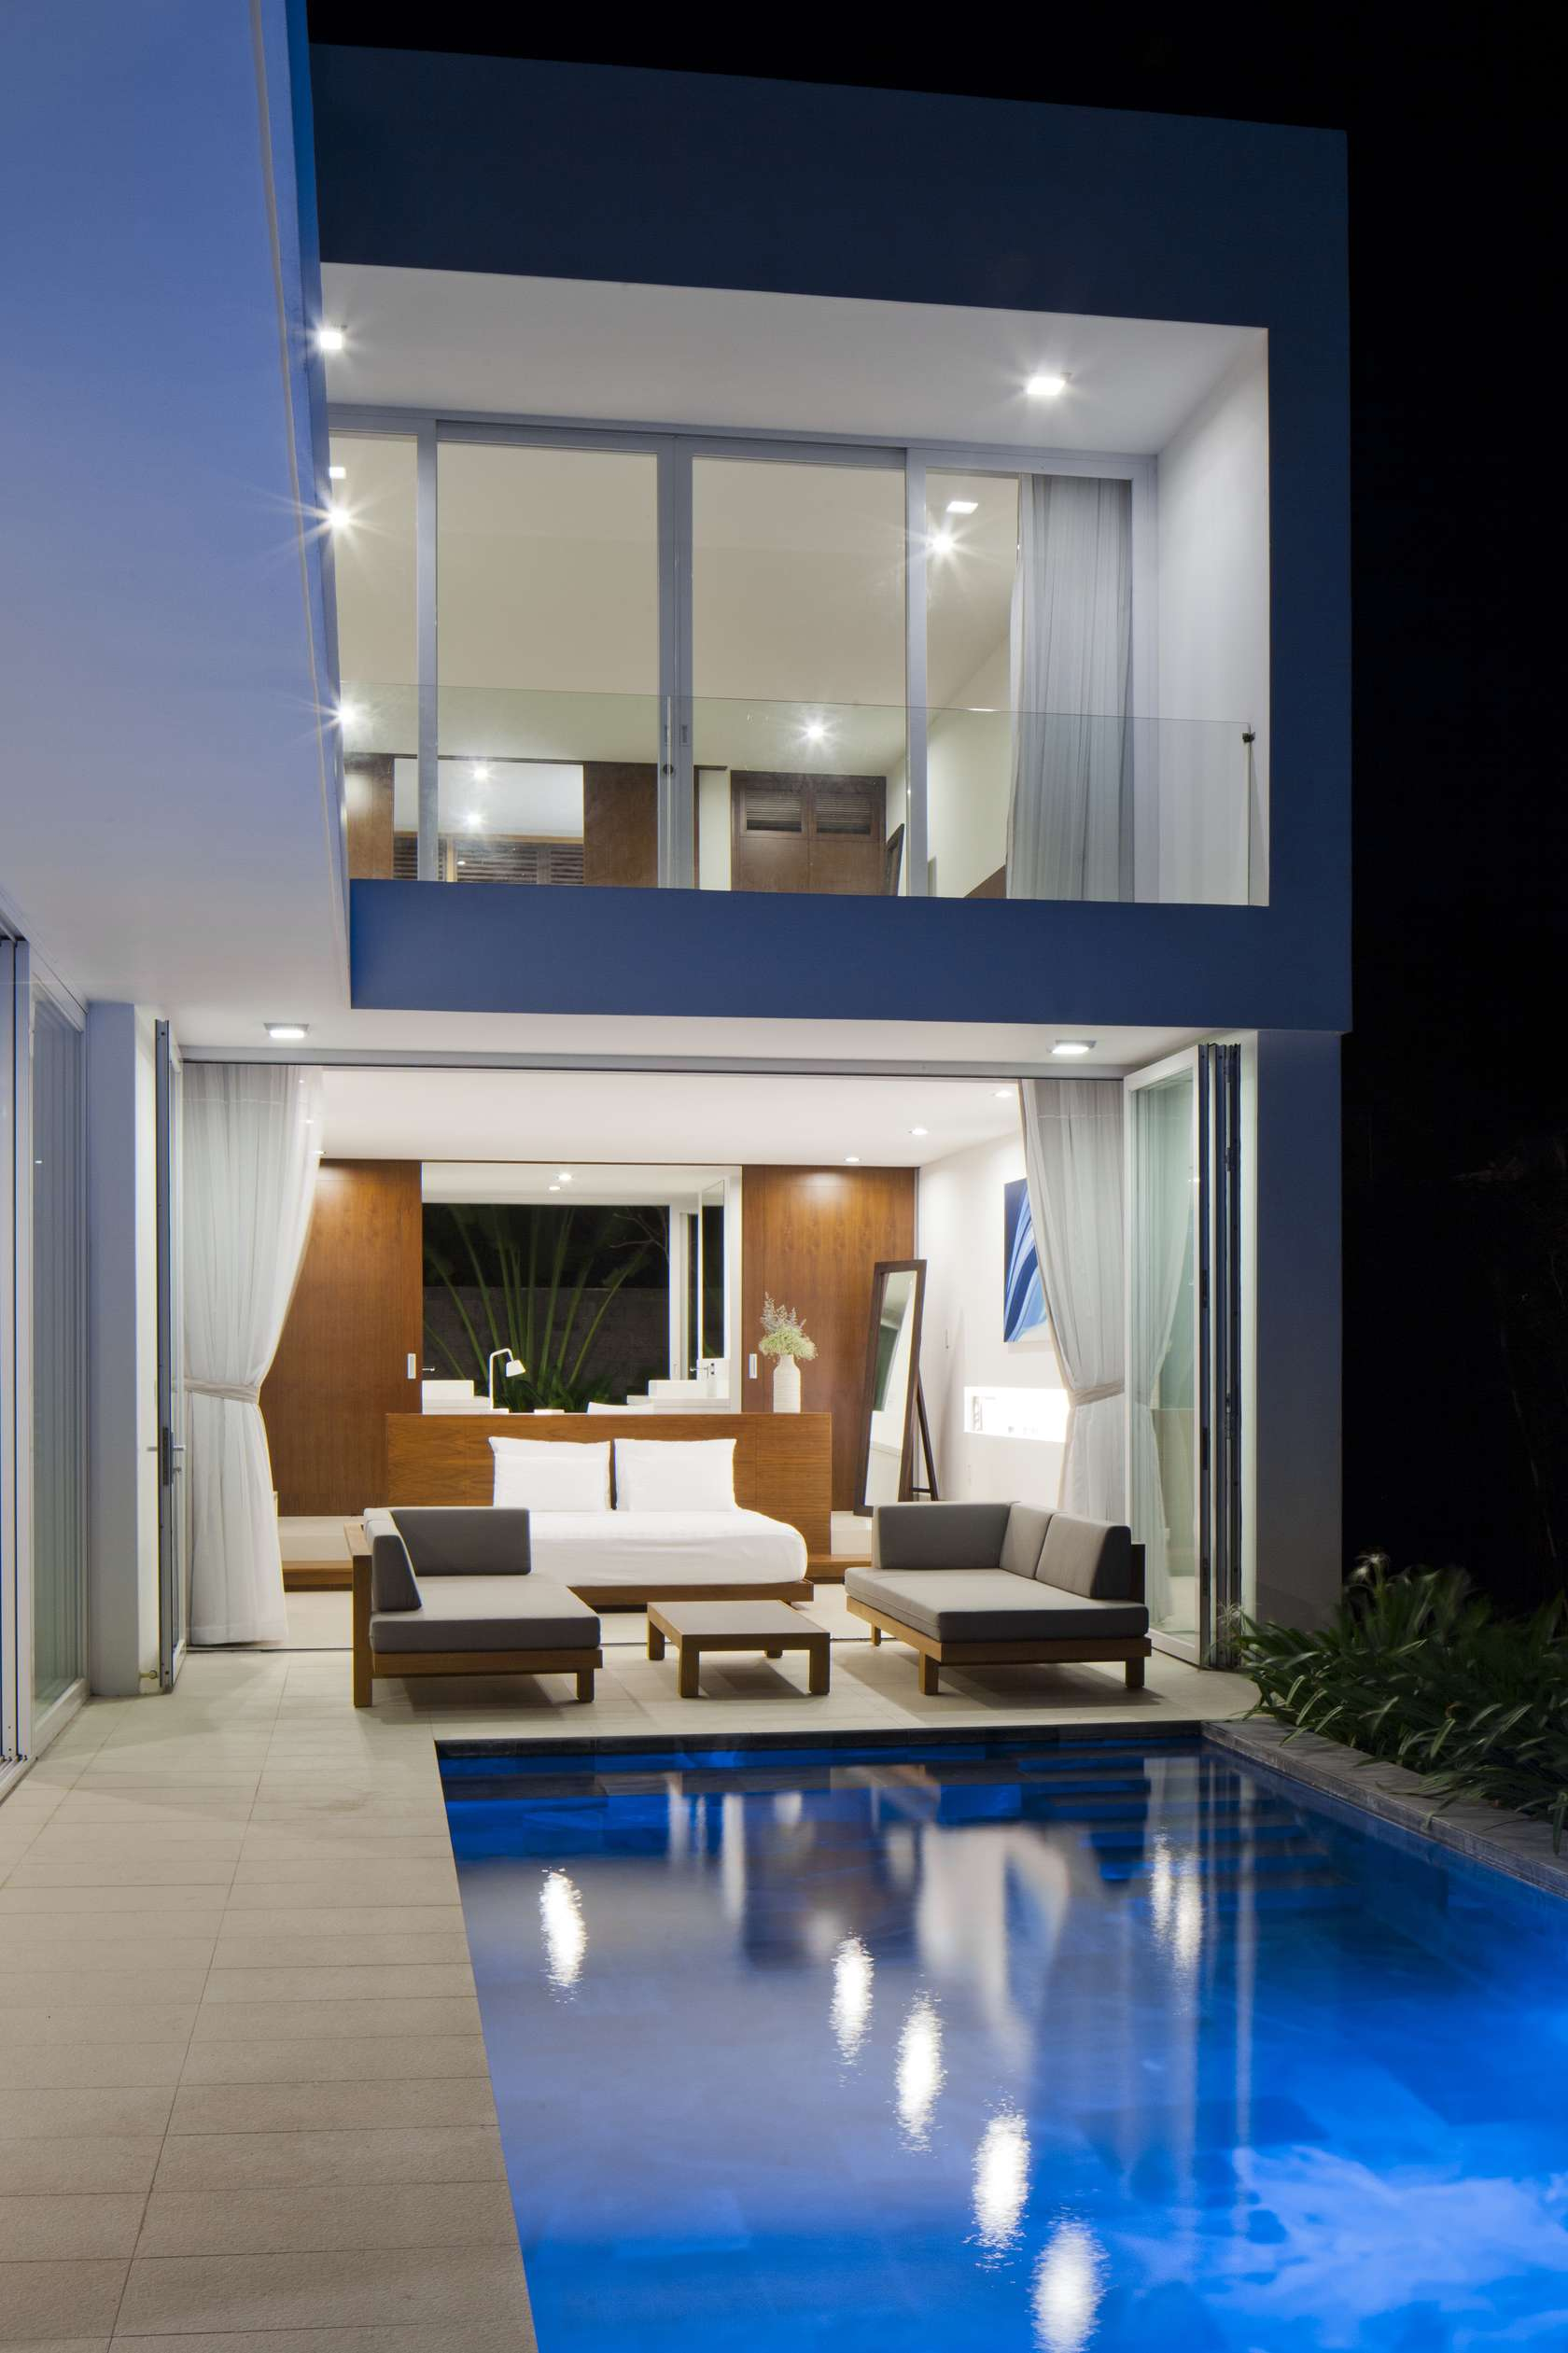 Beachfront Luxury Modern Home Exterior At Night: Private Beach Villas Offer Spectacular Ocean Views And Luxurious Interiors